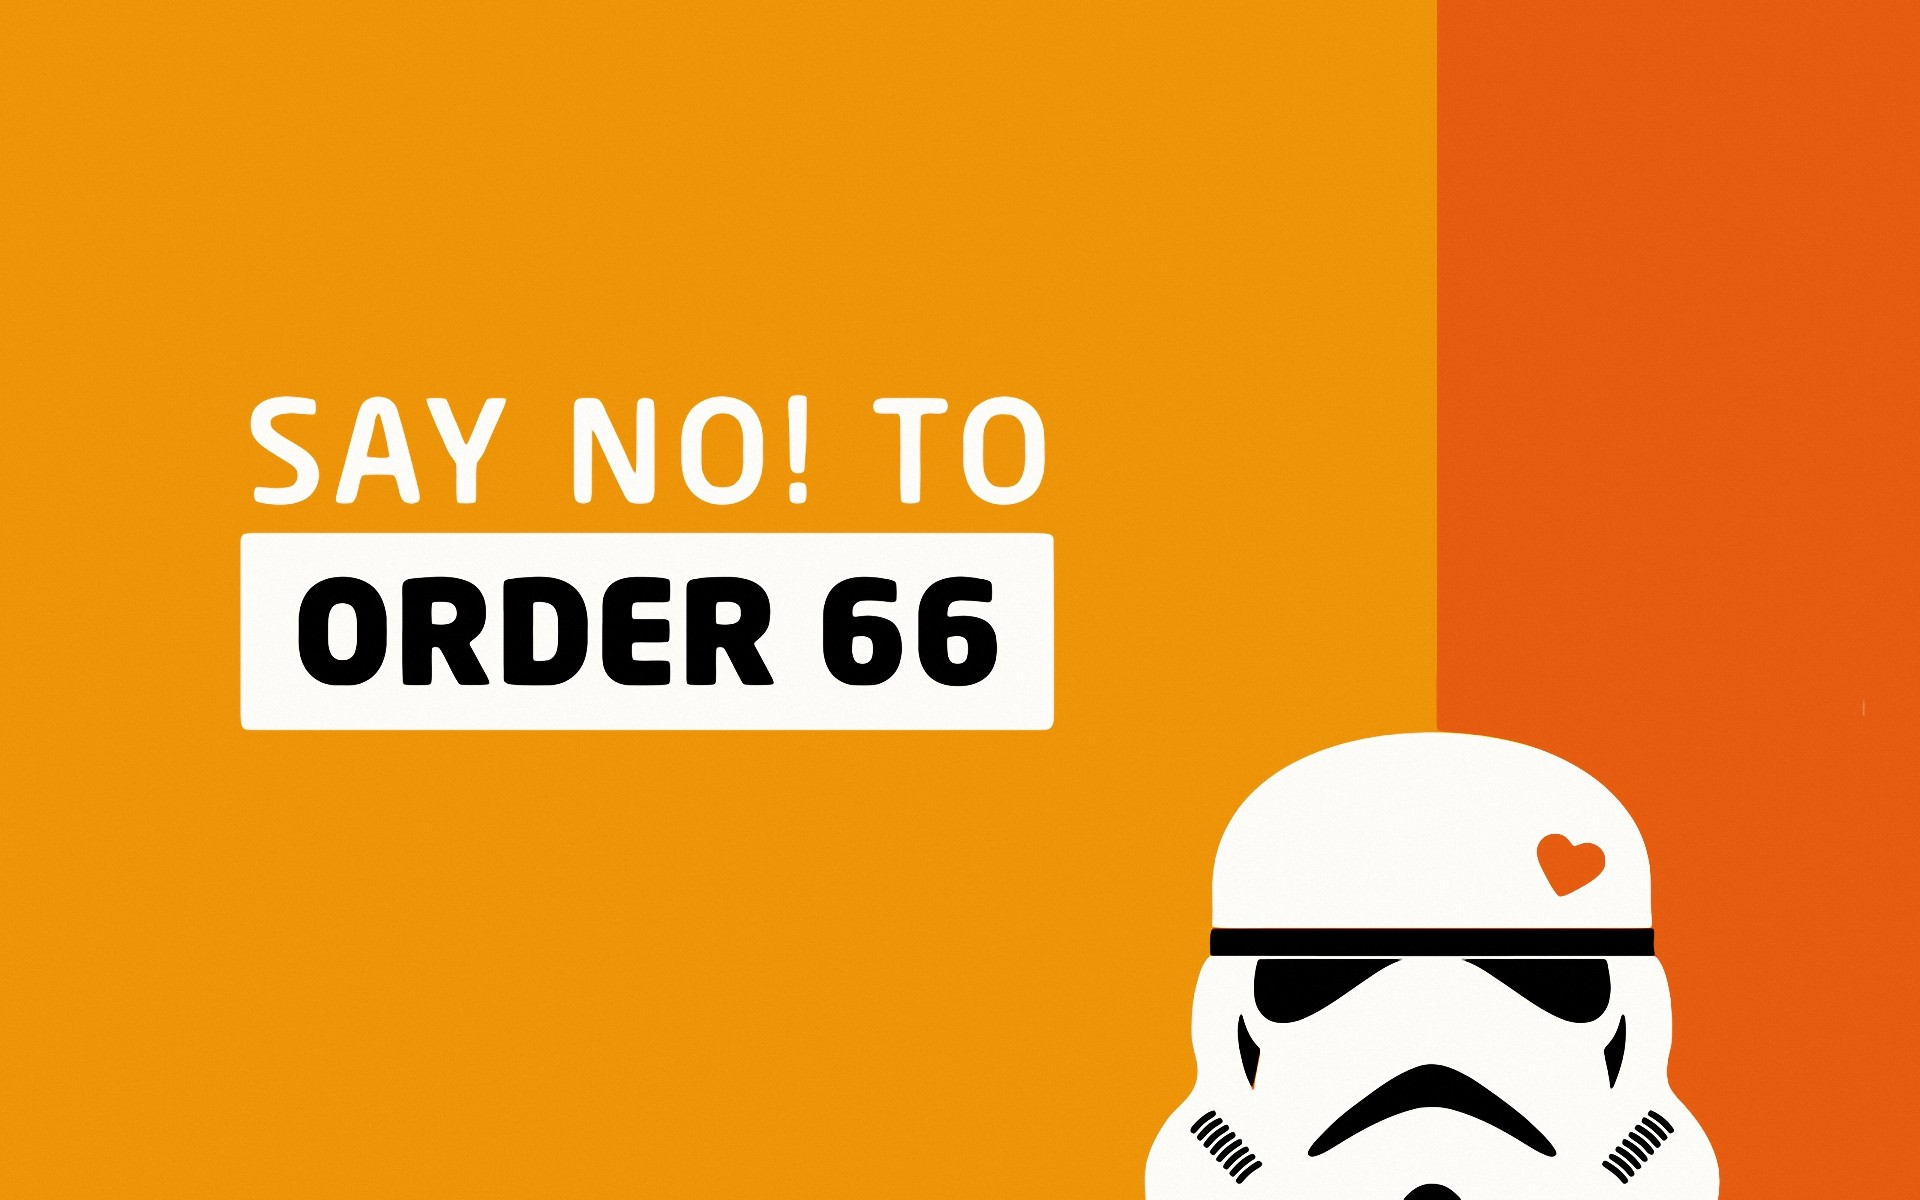 stormtroopers order 66 - photo #2